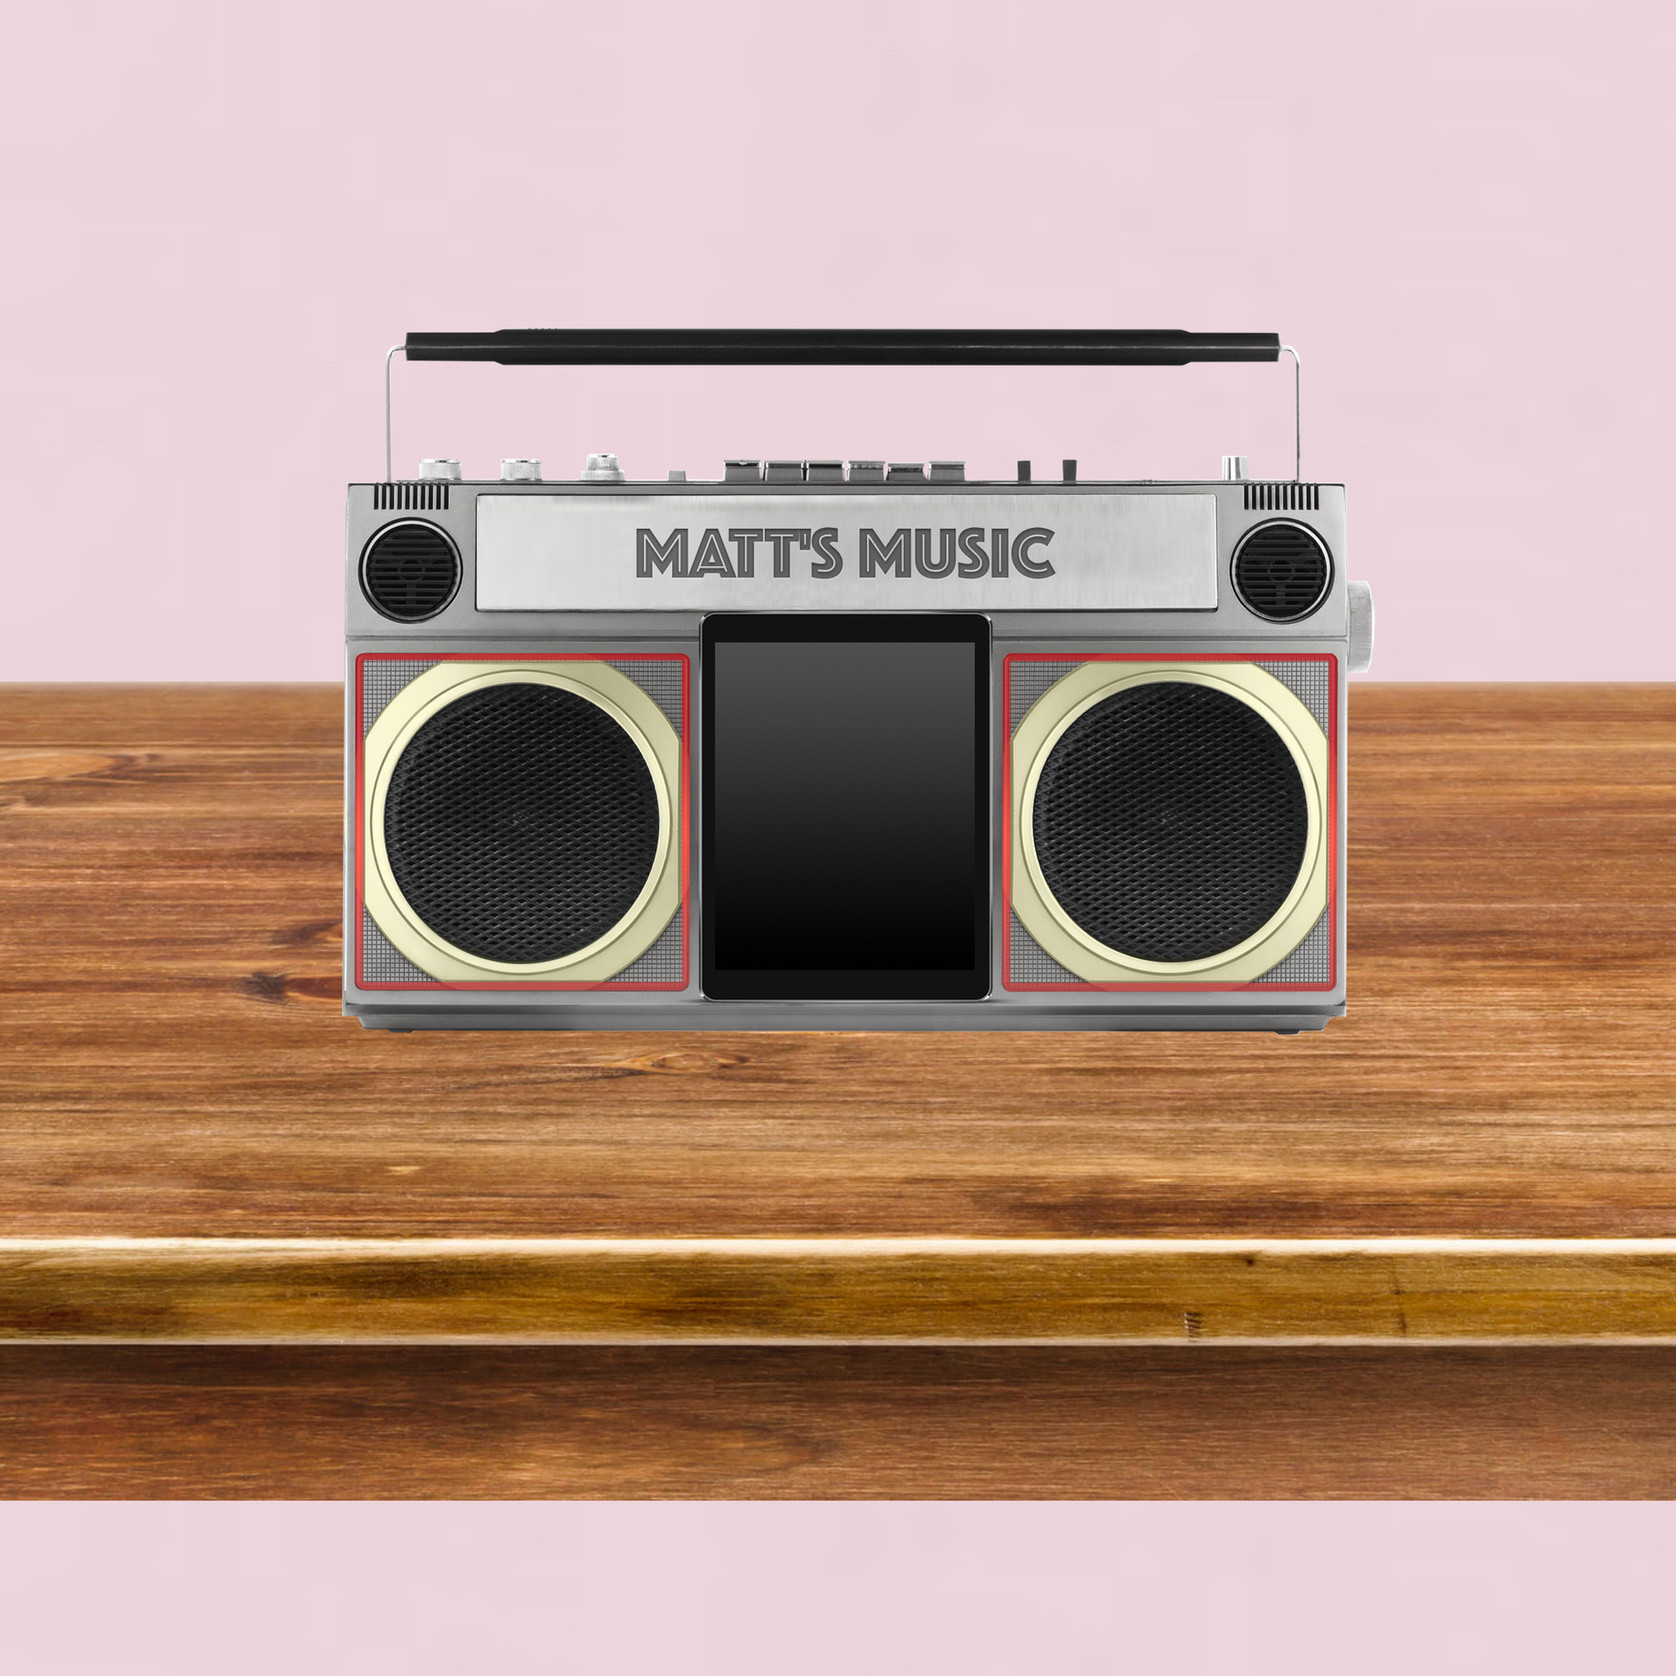 Background image featuring music player